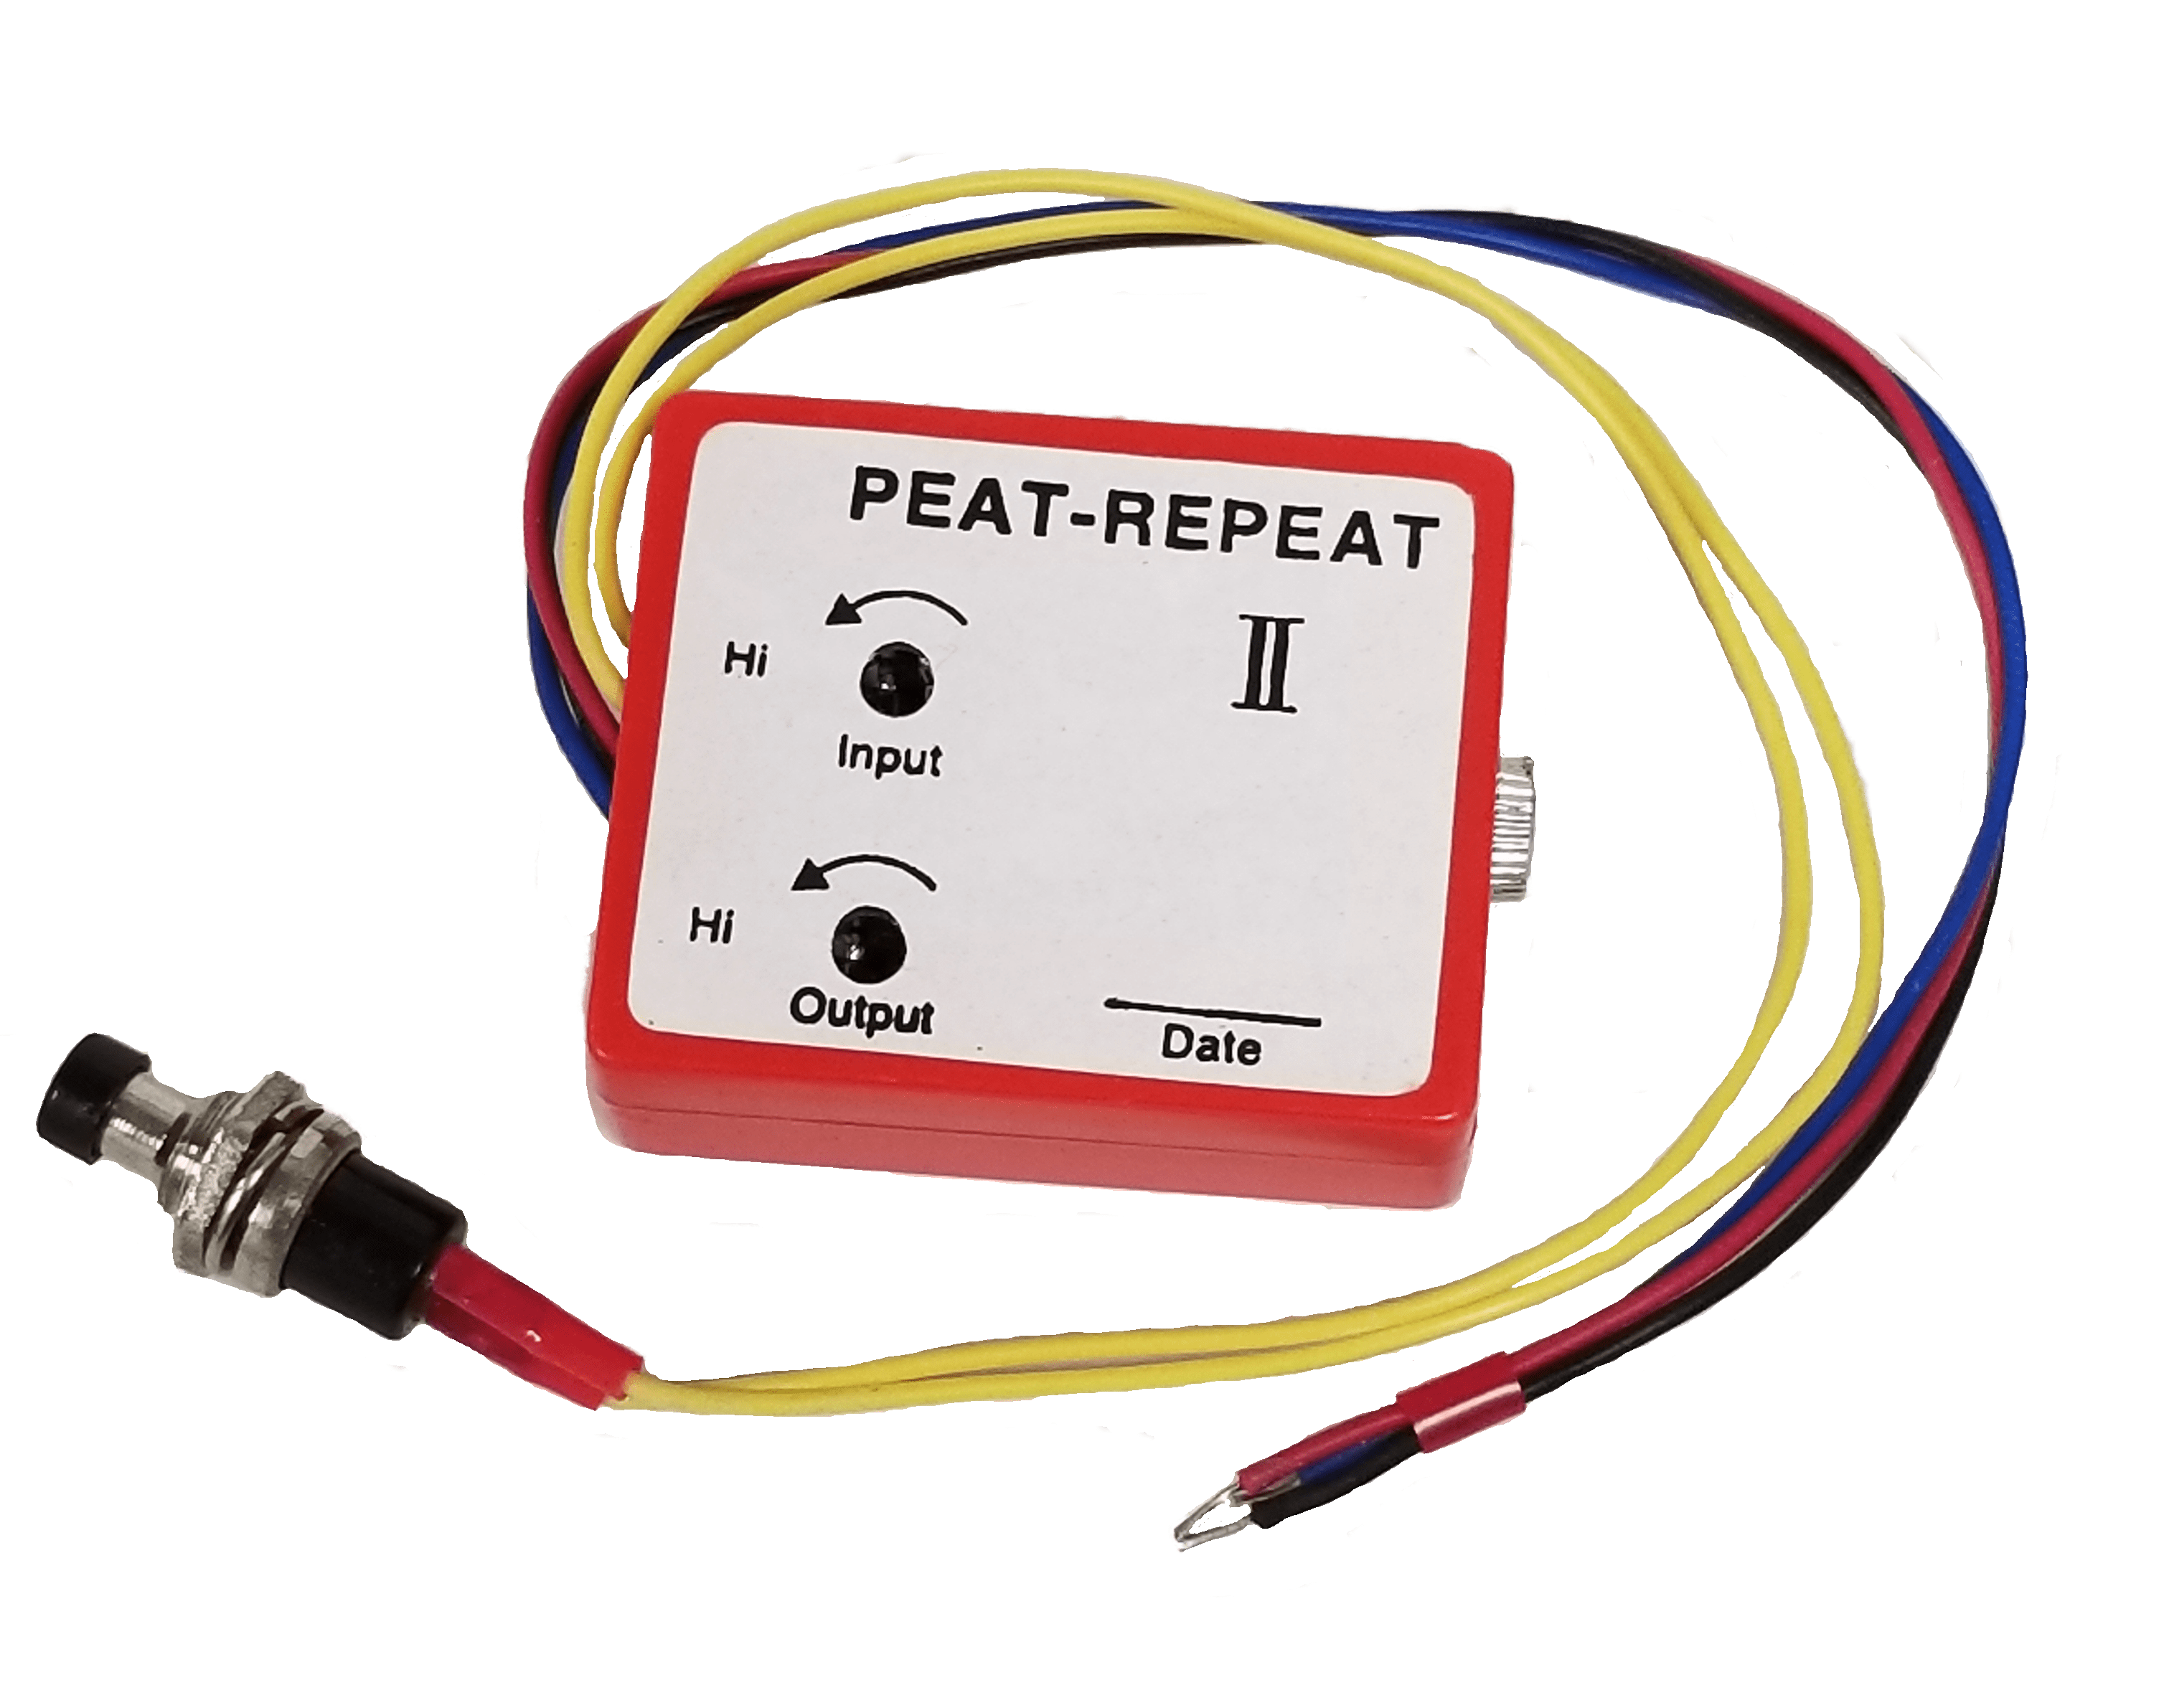 PP2 - Twinpoint Peat / Repeat Sound Module With 60 Second Record